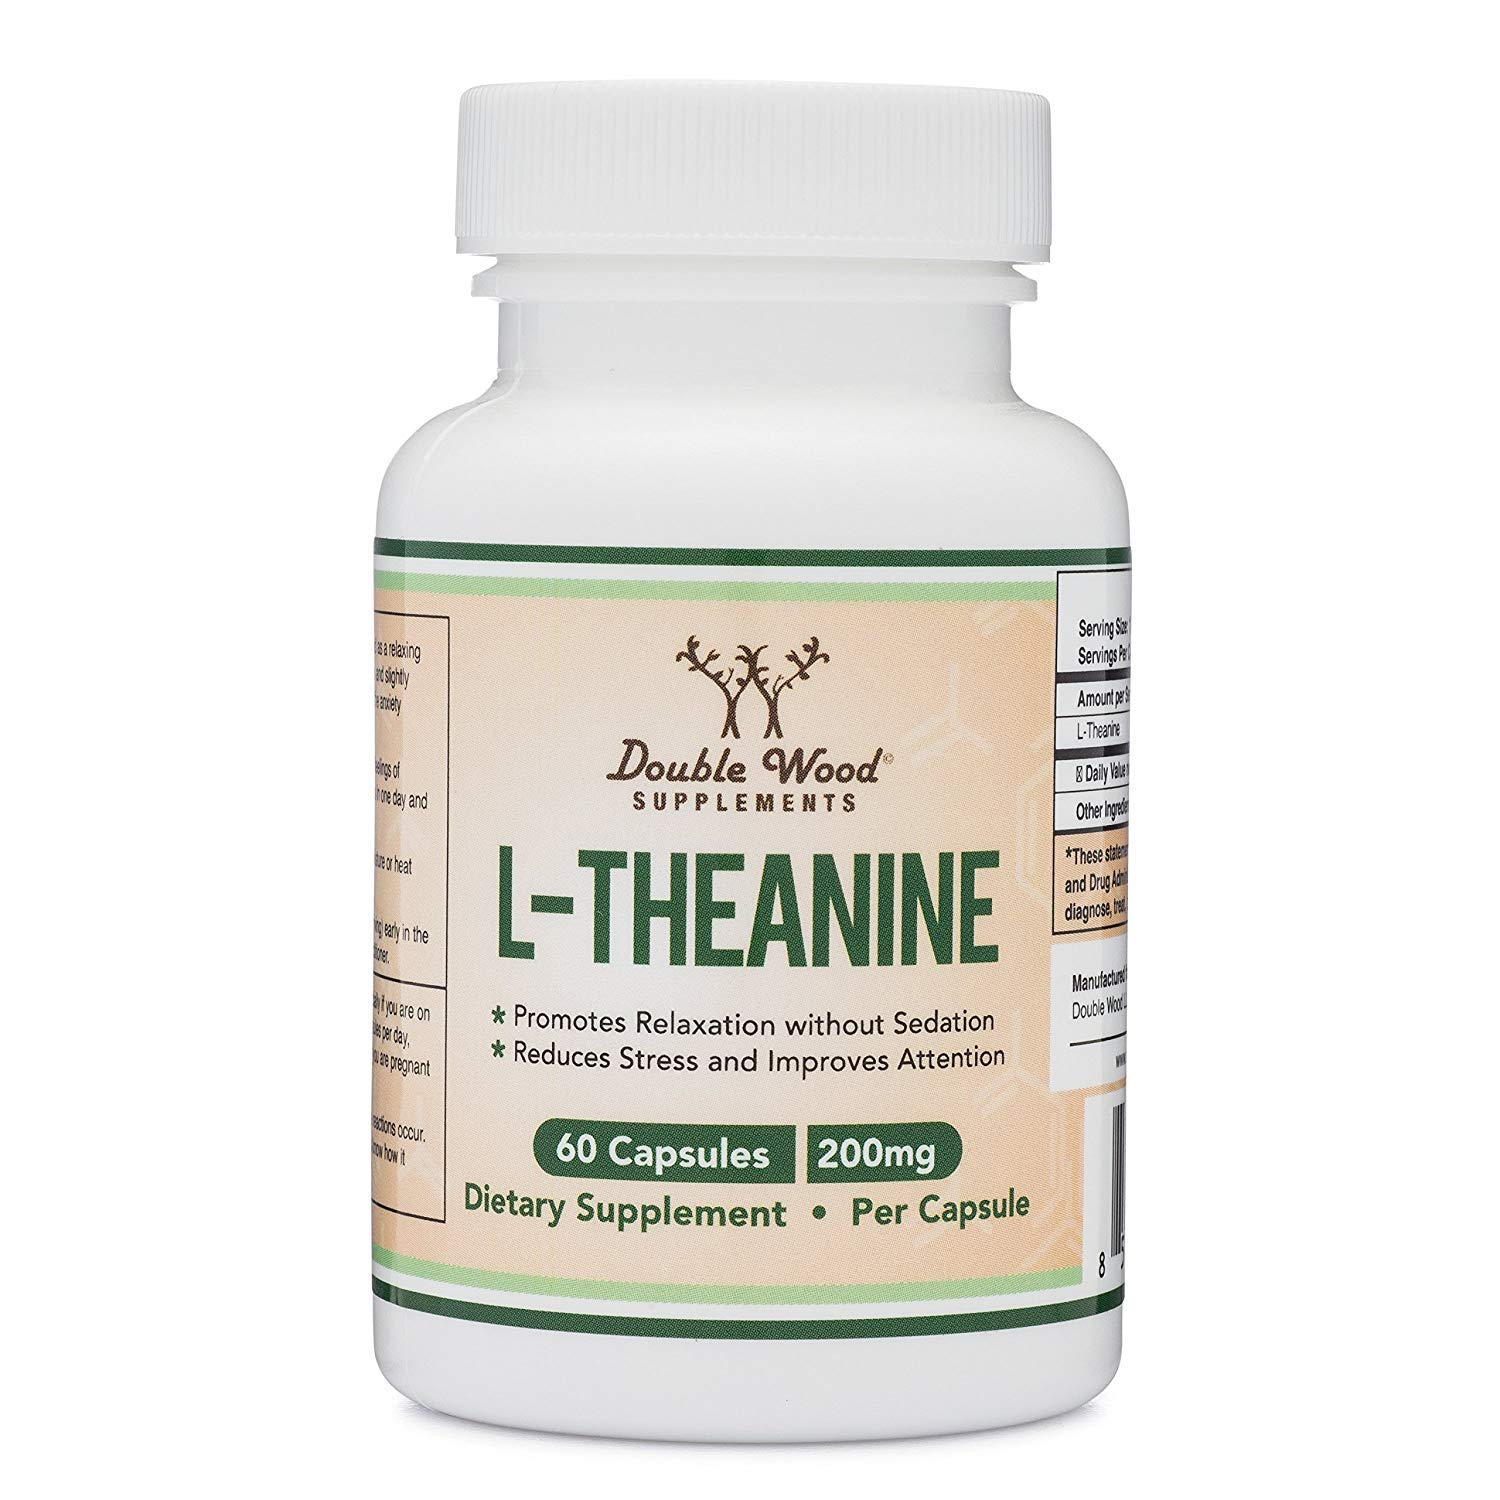 L-Theanine 200mg by Double Wood Supplements - Naturally Reduce Stress, Promote Relaxation and Quality Sleep - Soy Free, Gluten Free, Non-GMO -Third Party Tested and Made in The USA 60 Capsules by Double Wood Supplements